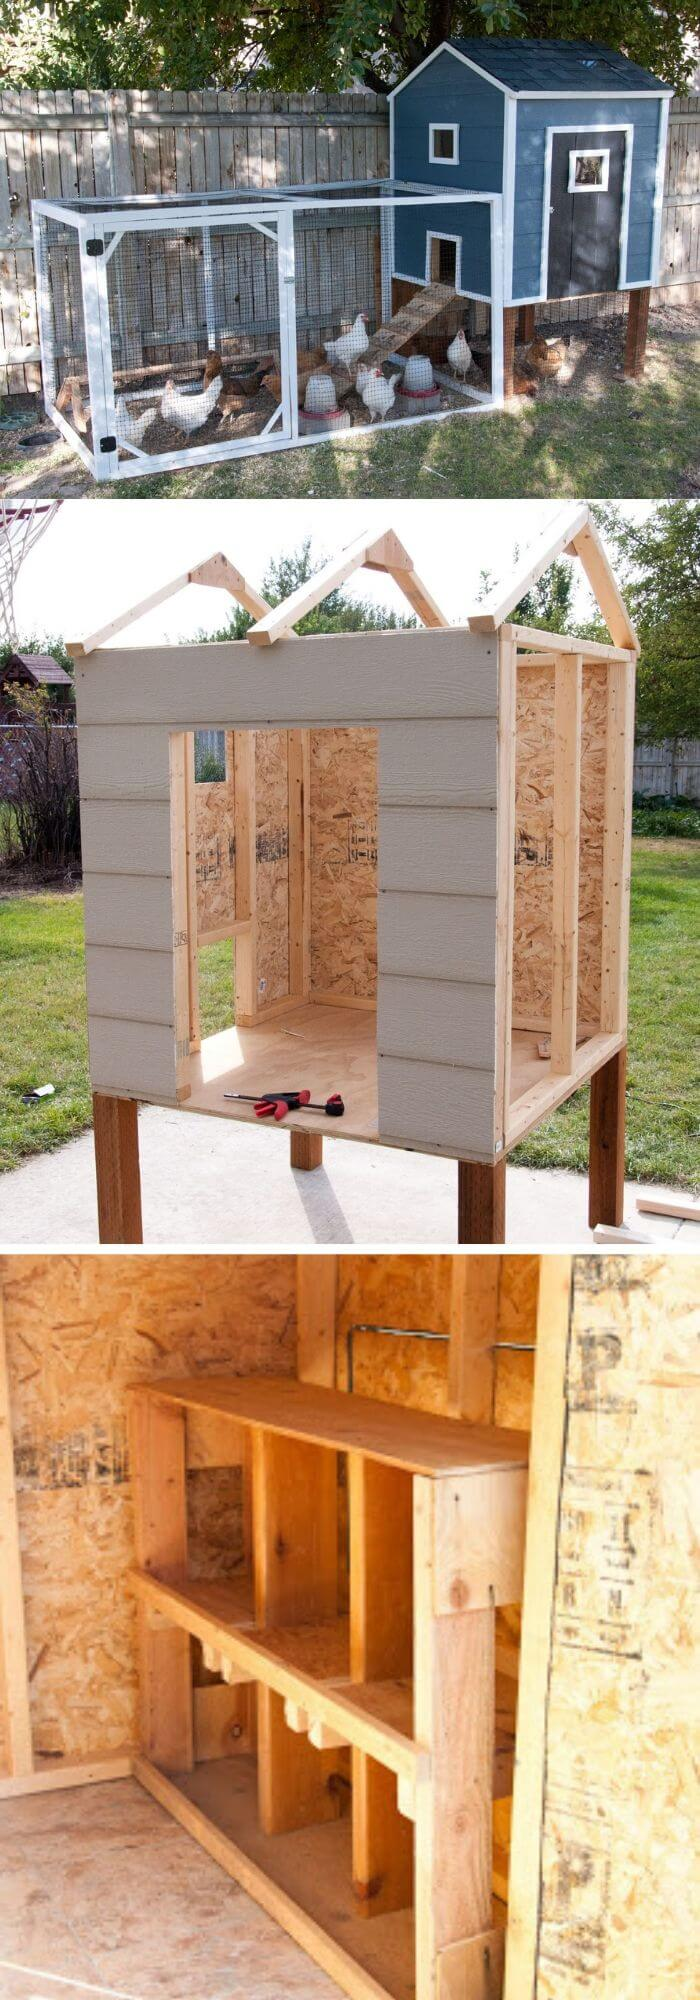 Penthouse style chicken coop